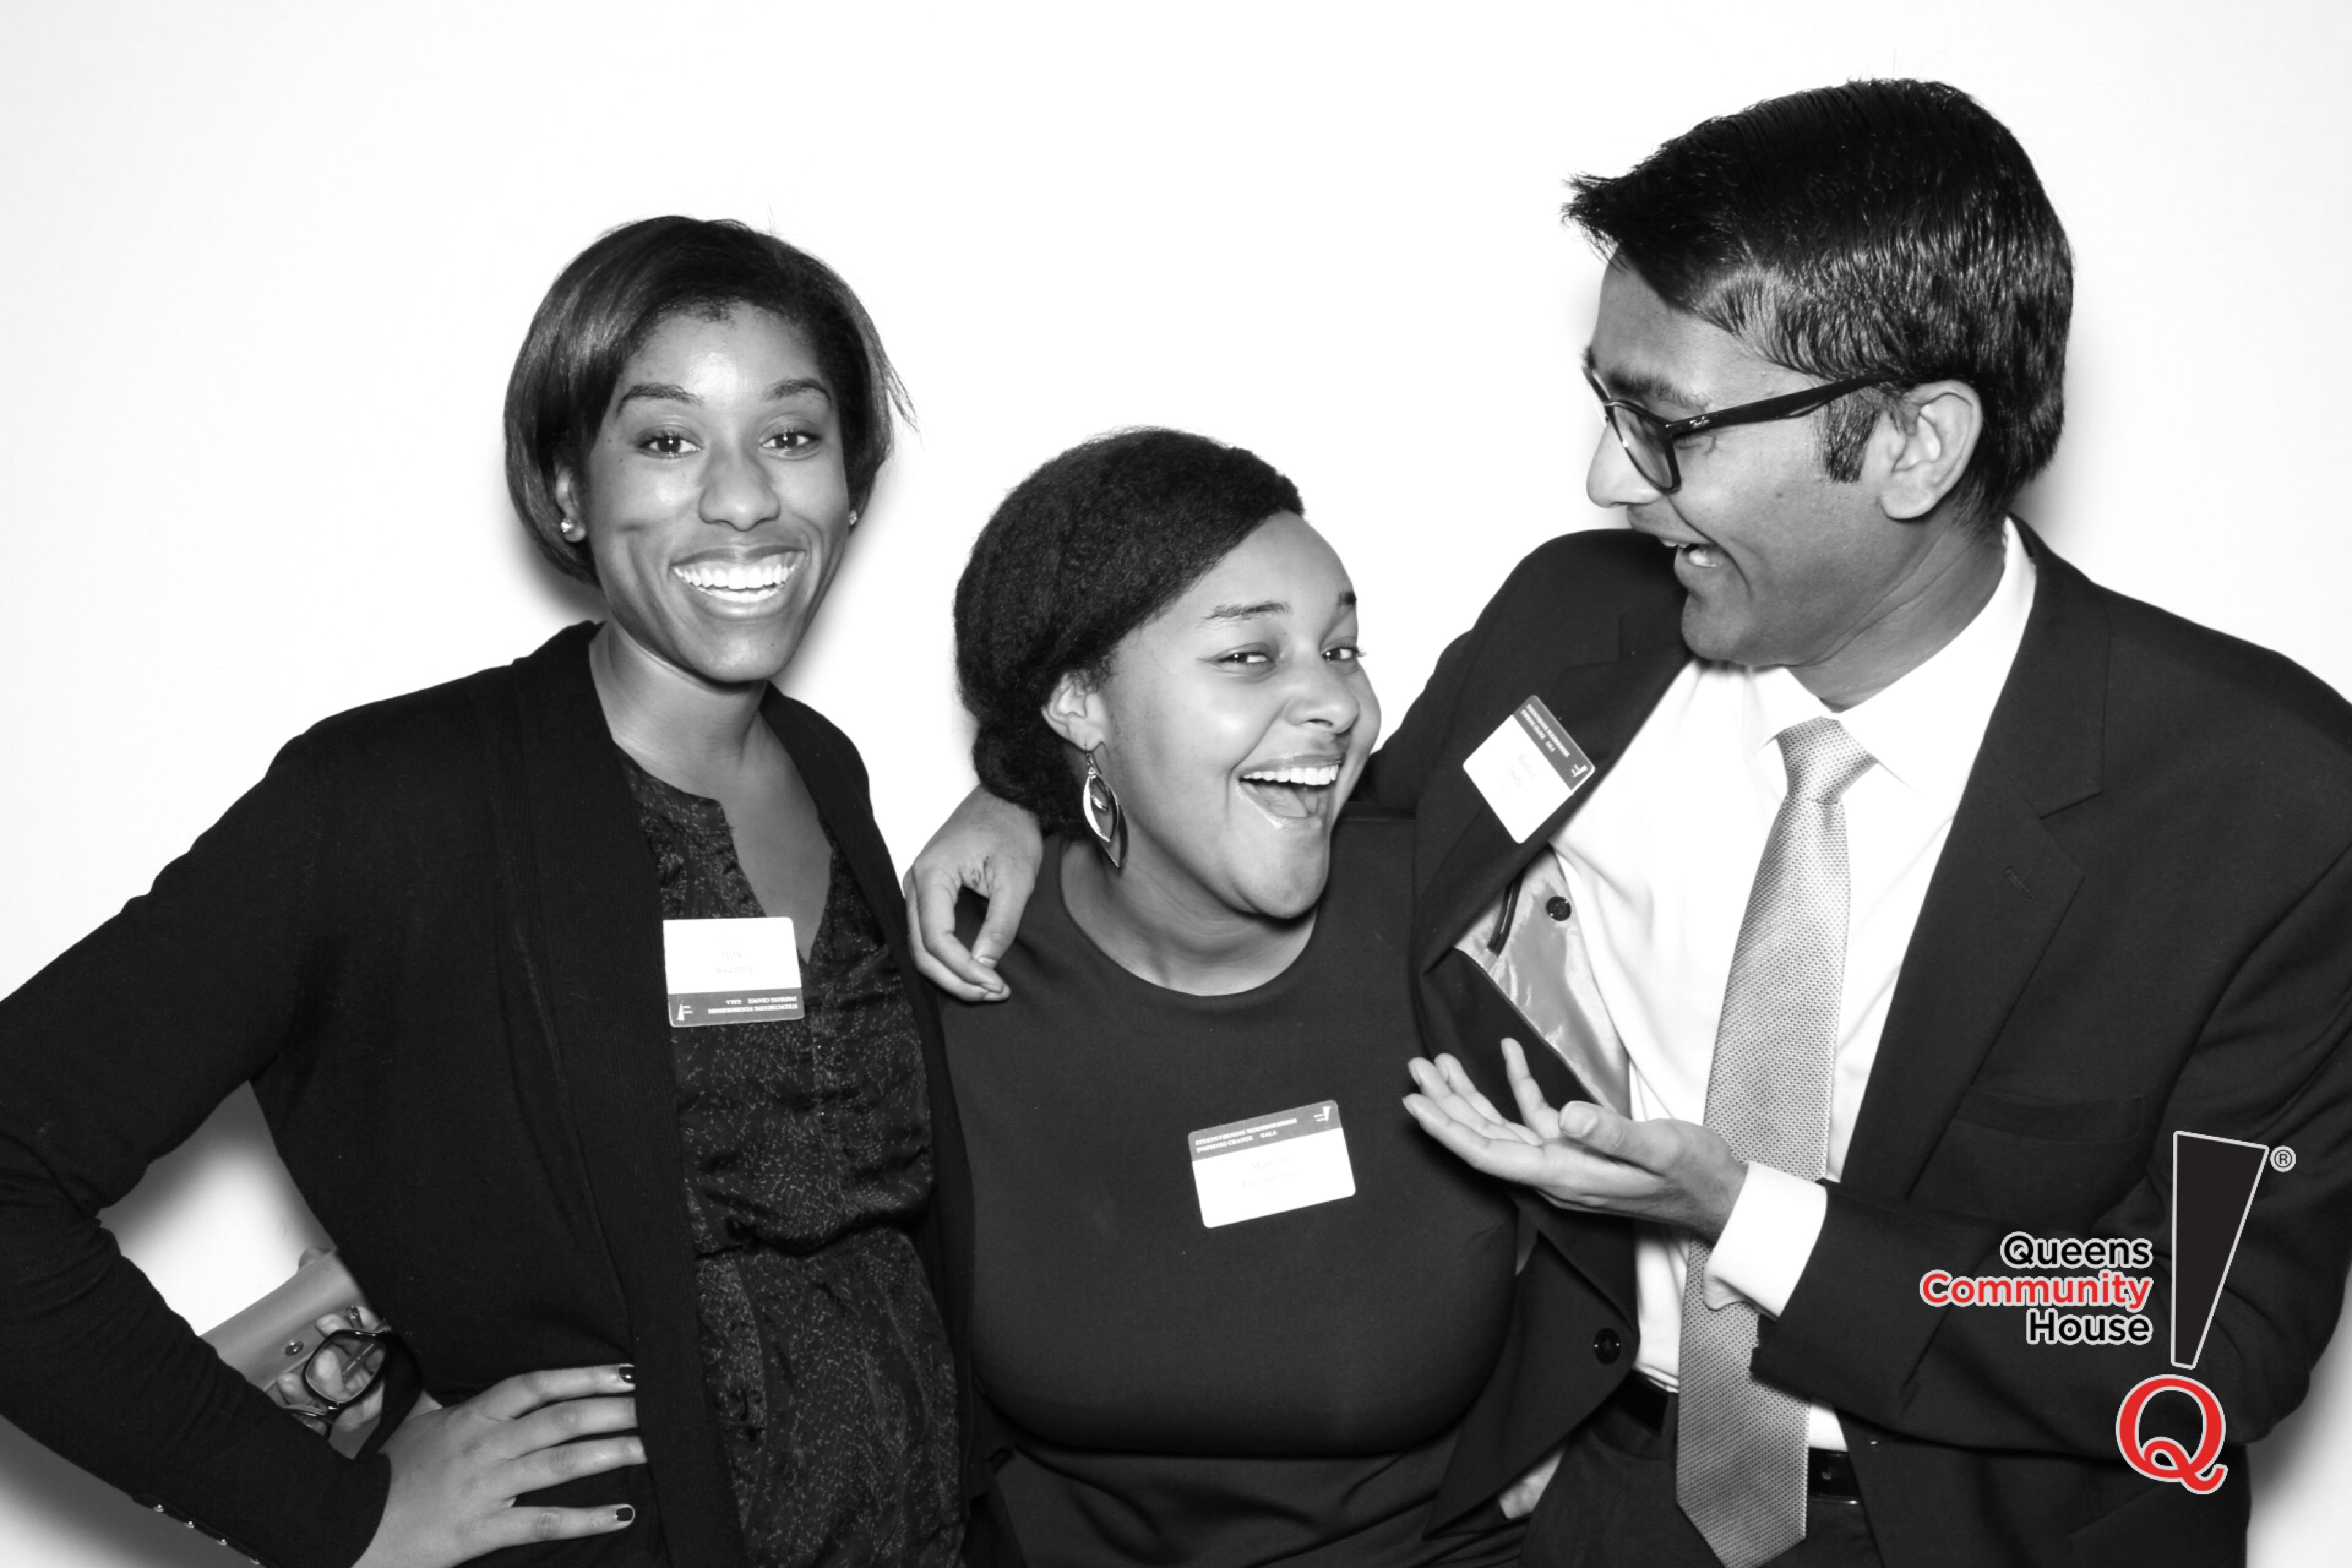 Three people smiling and laughing